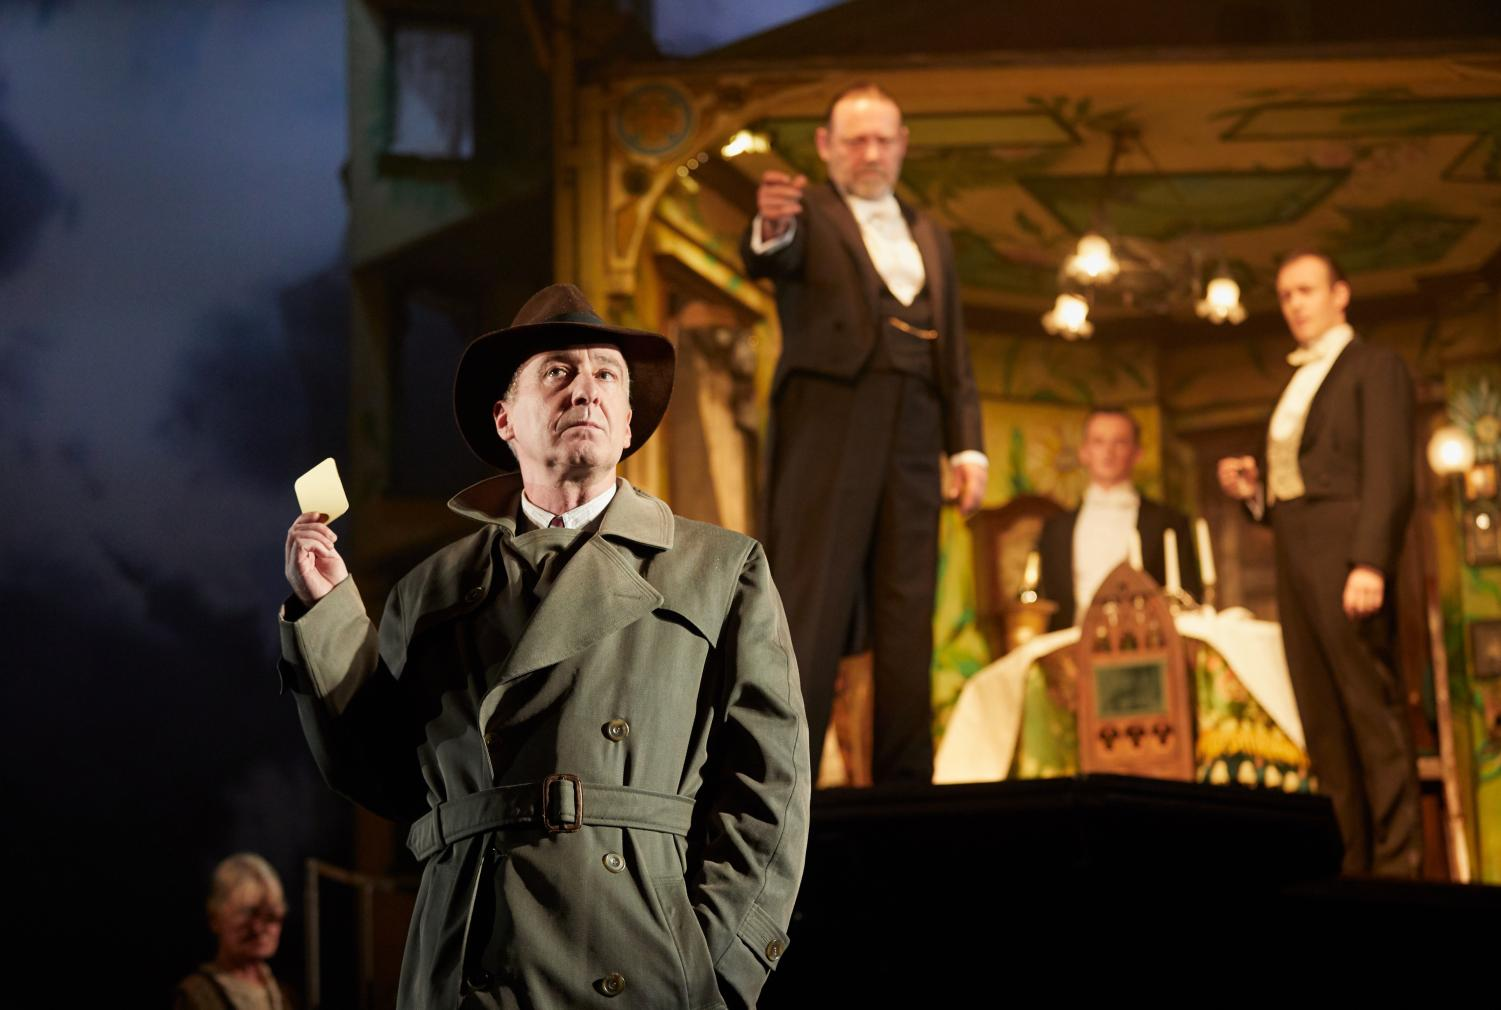 """""""An Inspector Calls"""" is at Emerson Cutler Majestic Theatre in Boston from March 14-24, 2019."""